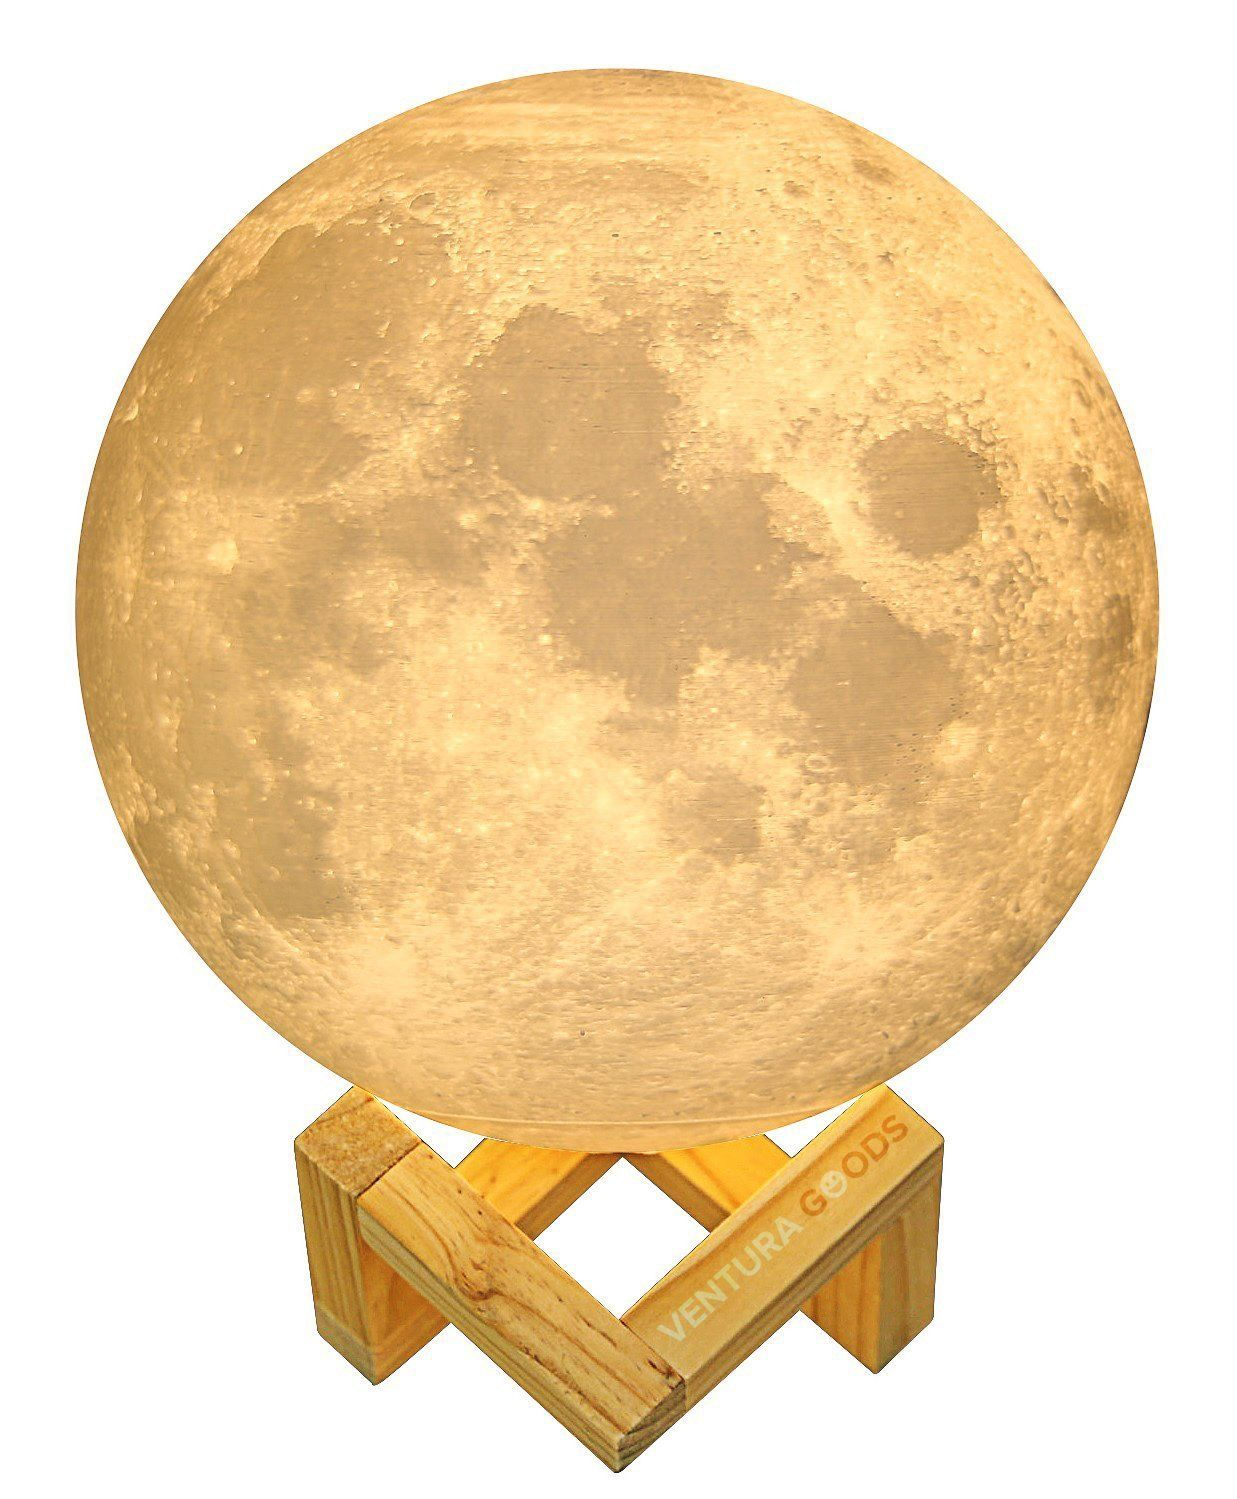 Amazon Com 3d Moon Lamp By Ventura Goods 5 7 Inch Diameter Three Color Tones With Wooden Stand Usb Recharg Moon Light Lamp Led Night Lamp Night Light Lamp